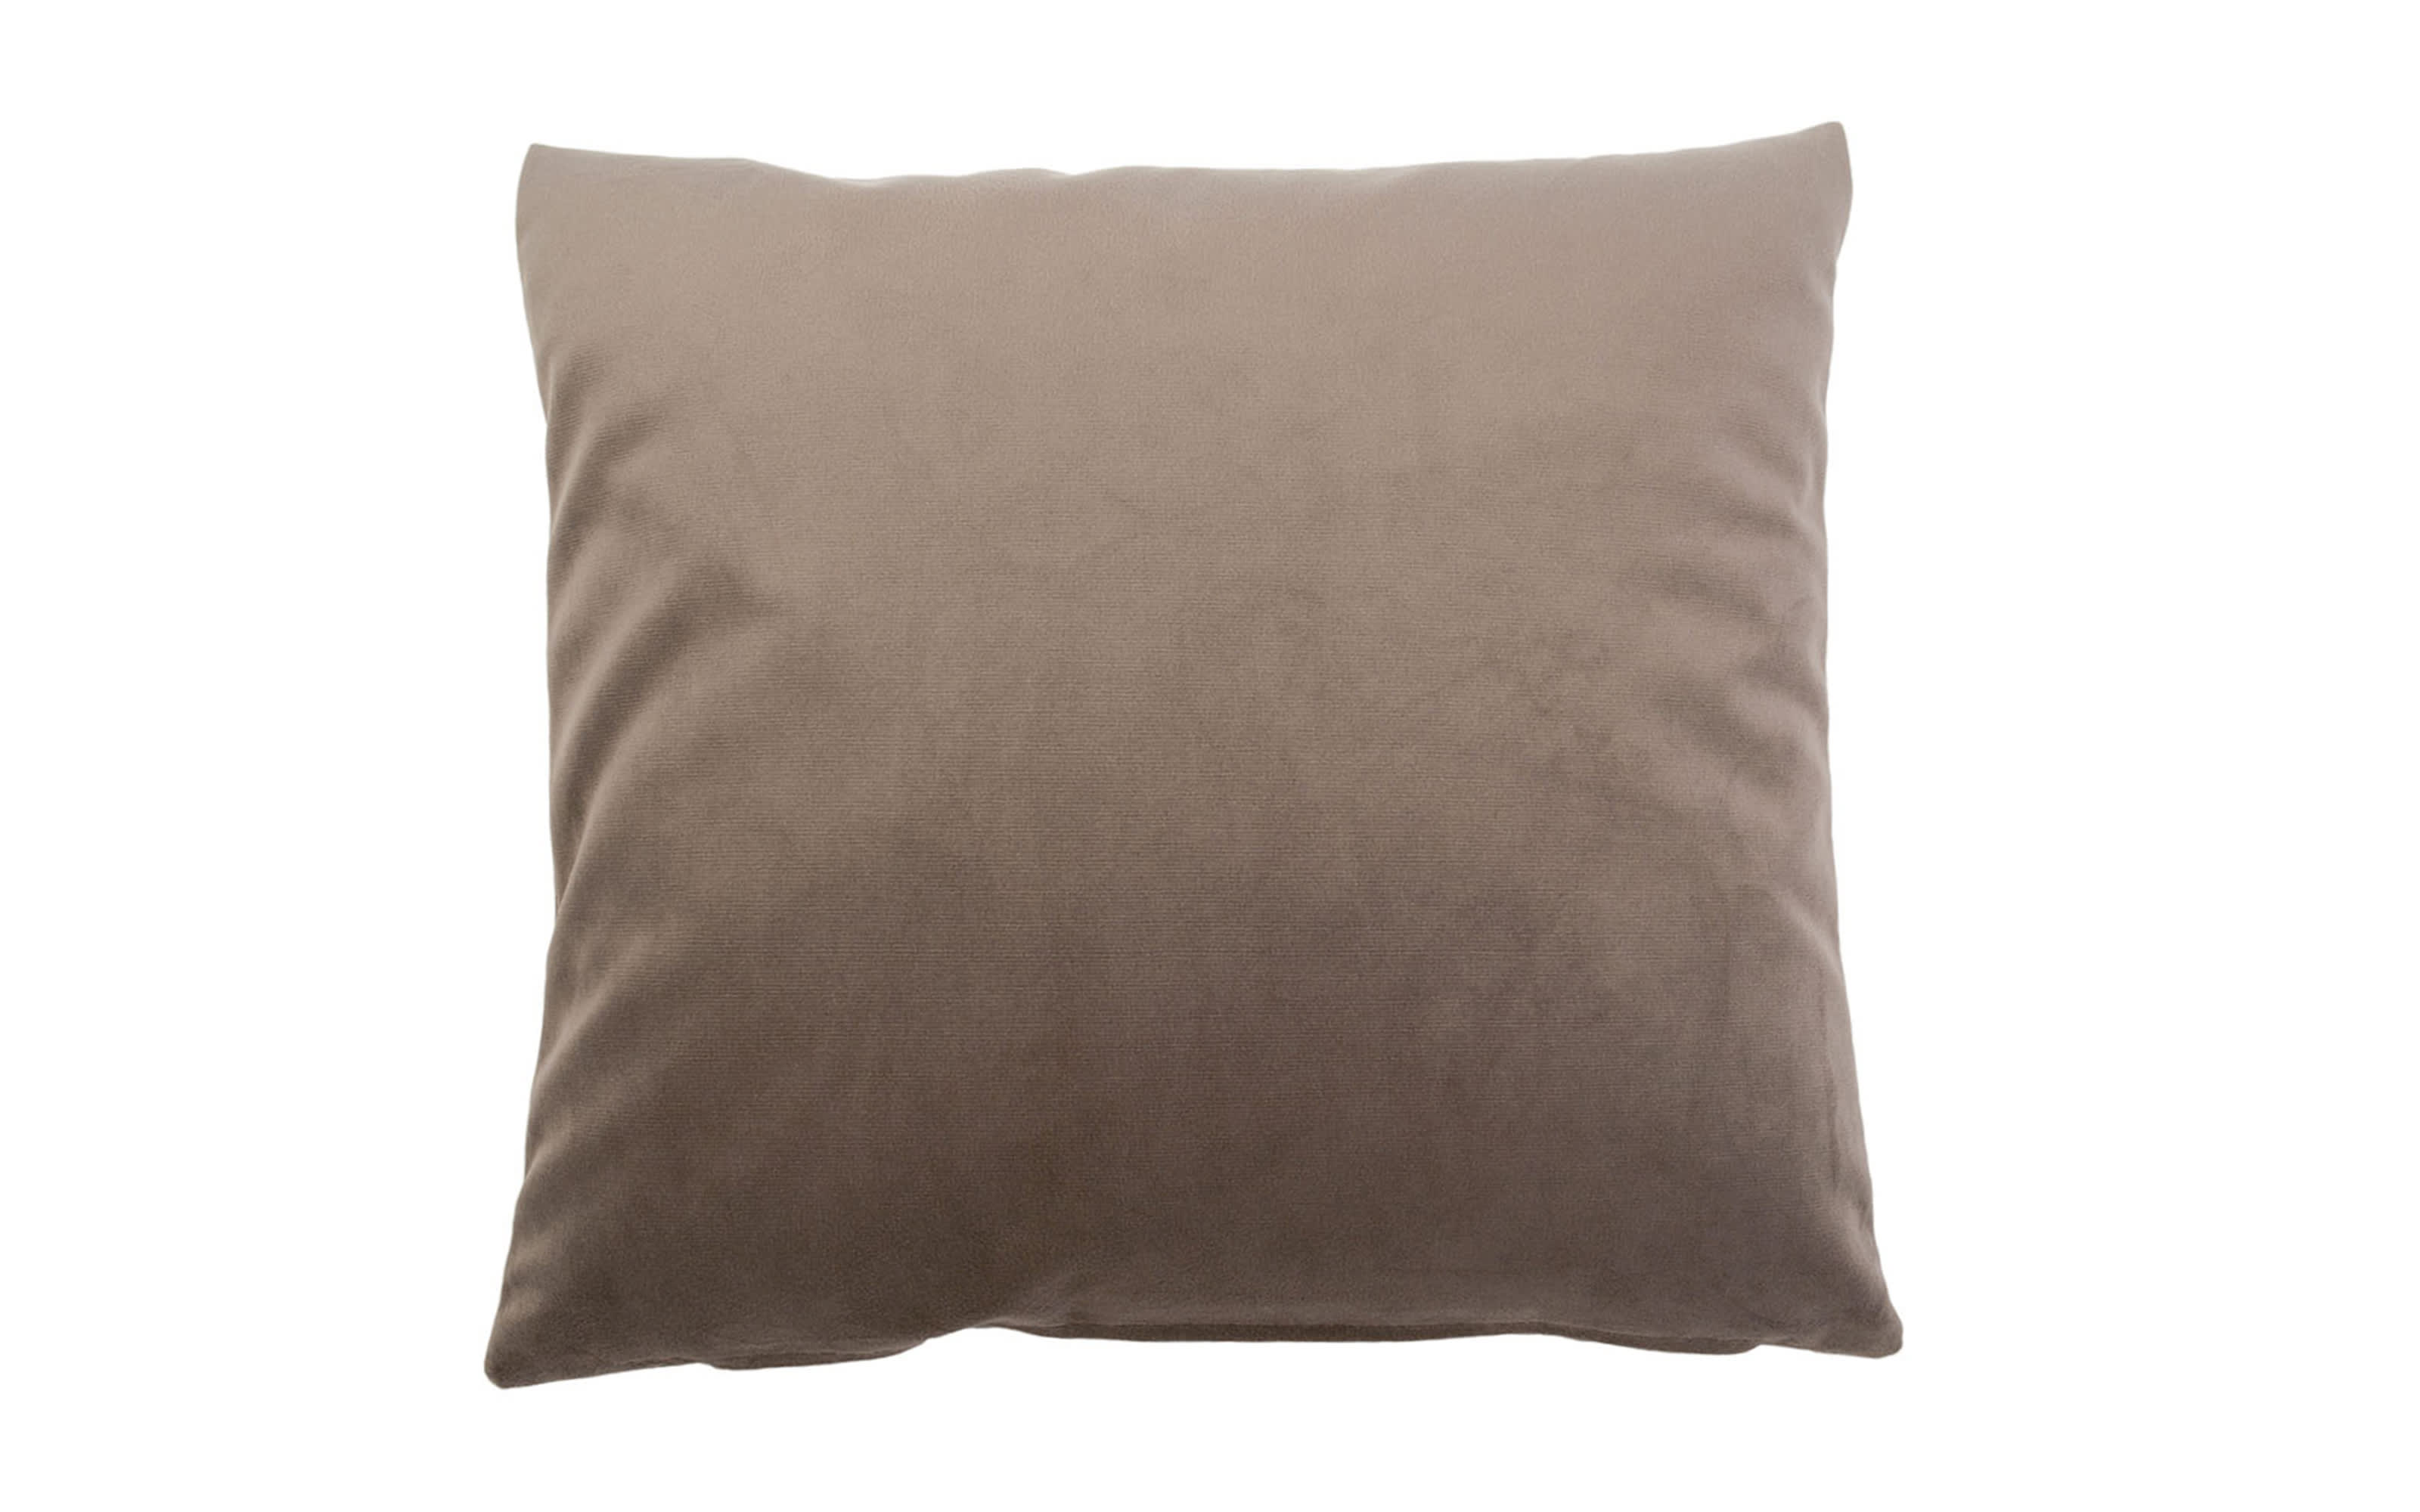 Kissenhülle Duval in taupe, 60 x 60 cm